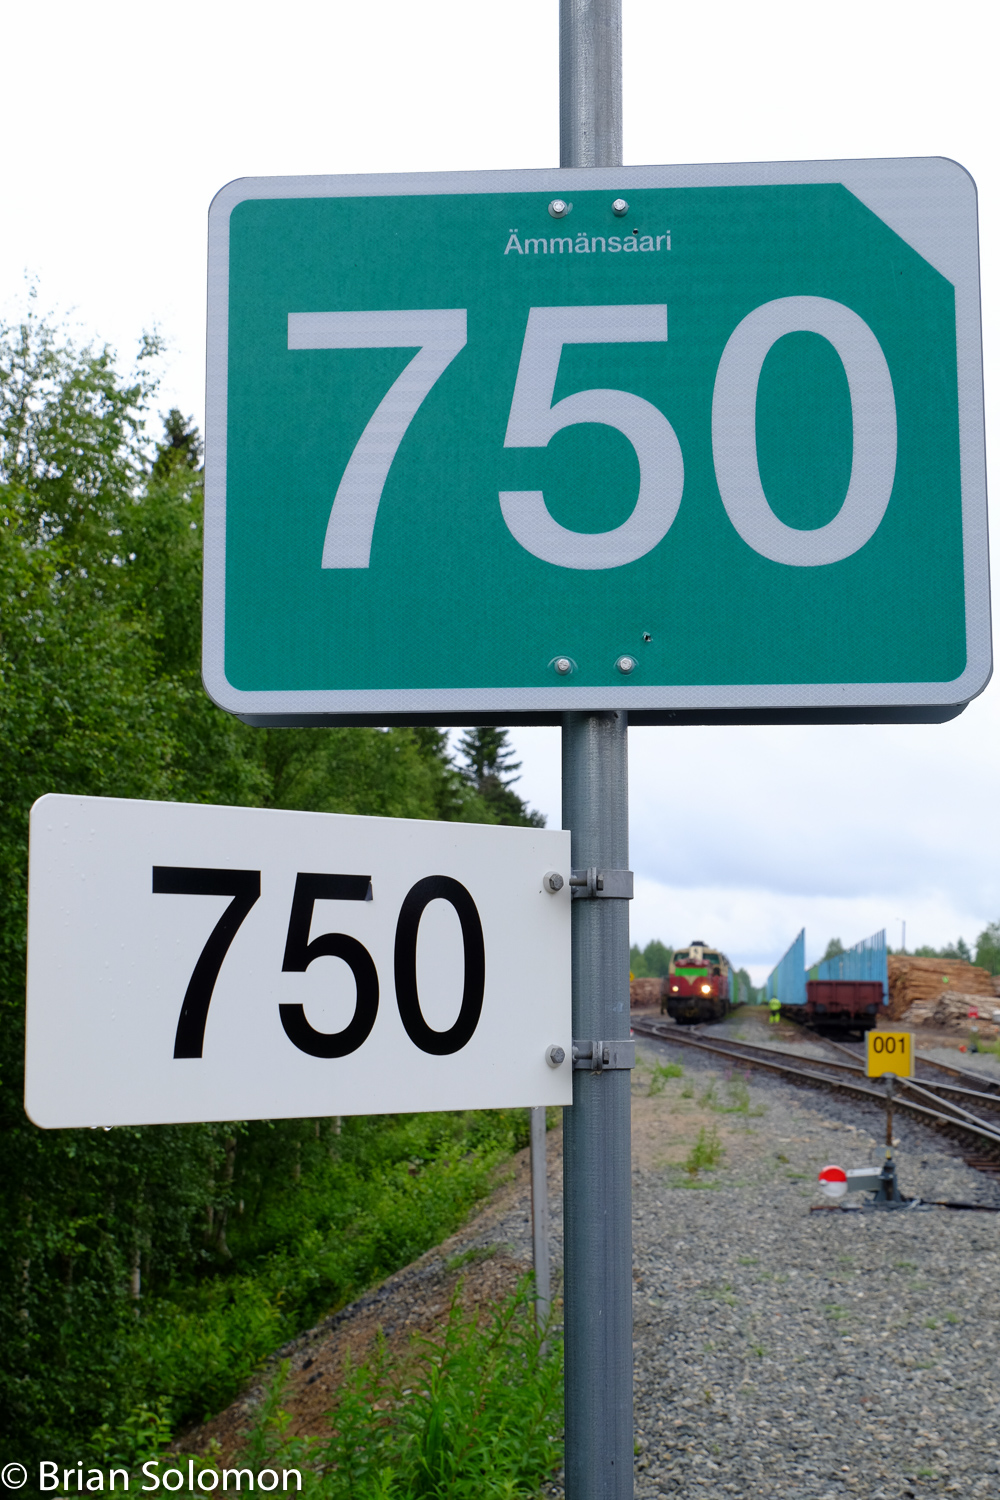 The number 750 represents the distance by rail from Helsinki in kilometers.